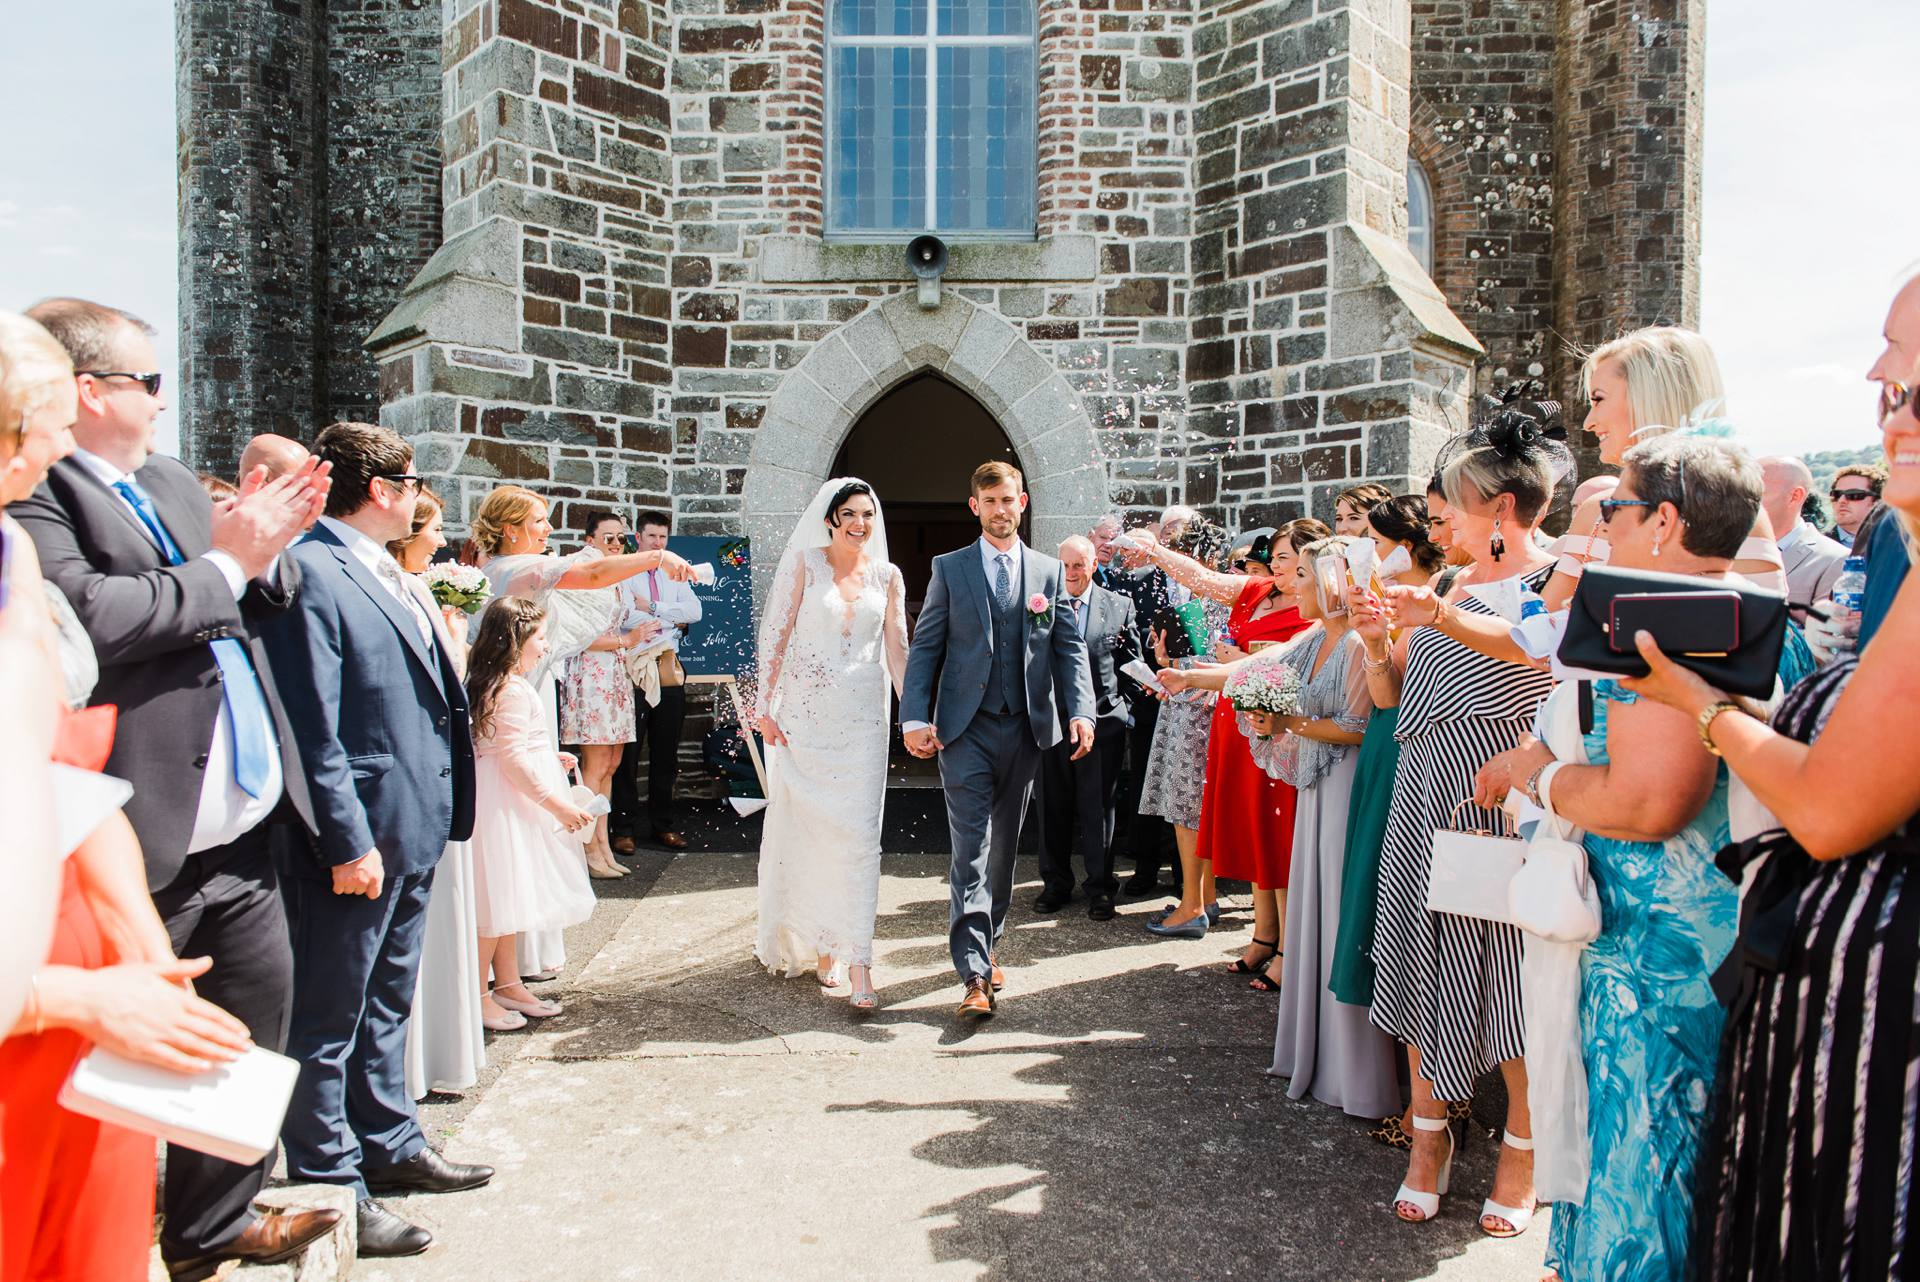 Bride and groom leave church with confetti around them